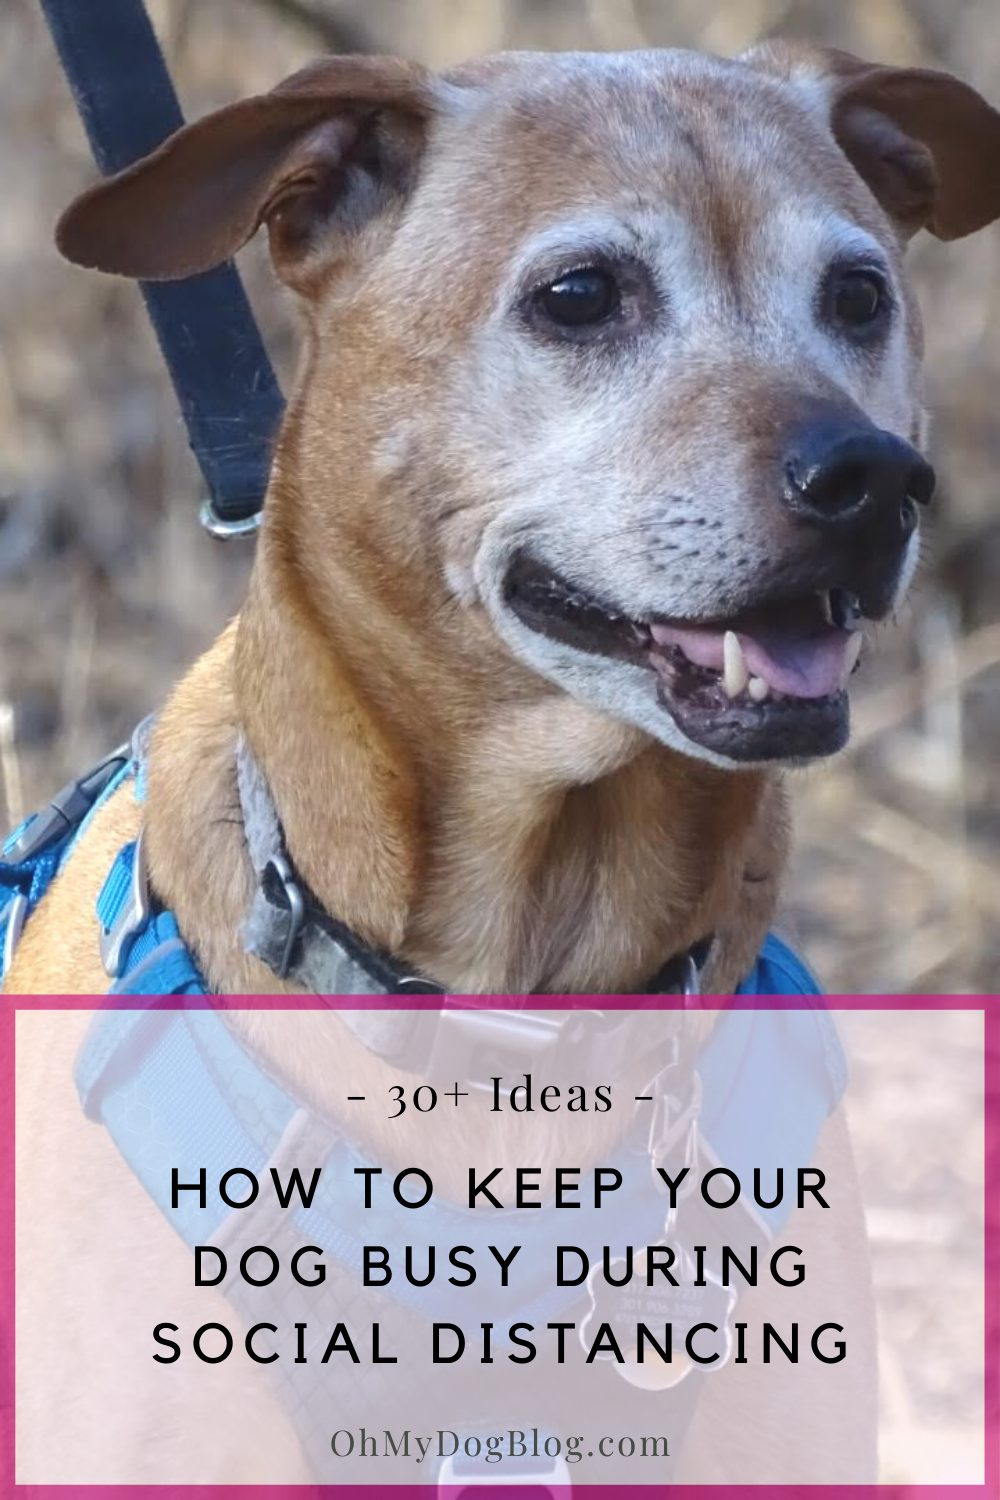 Practicing recall with Cooper is one of 30+ ways to keep busy during social isolation